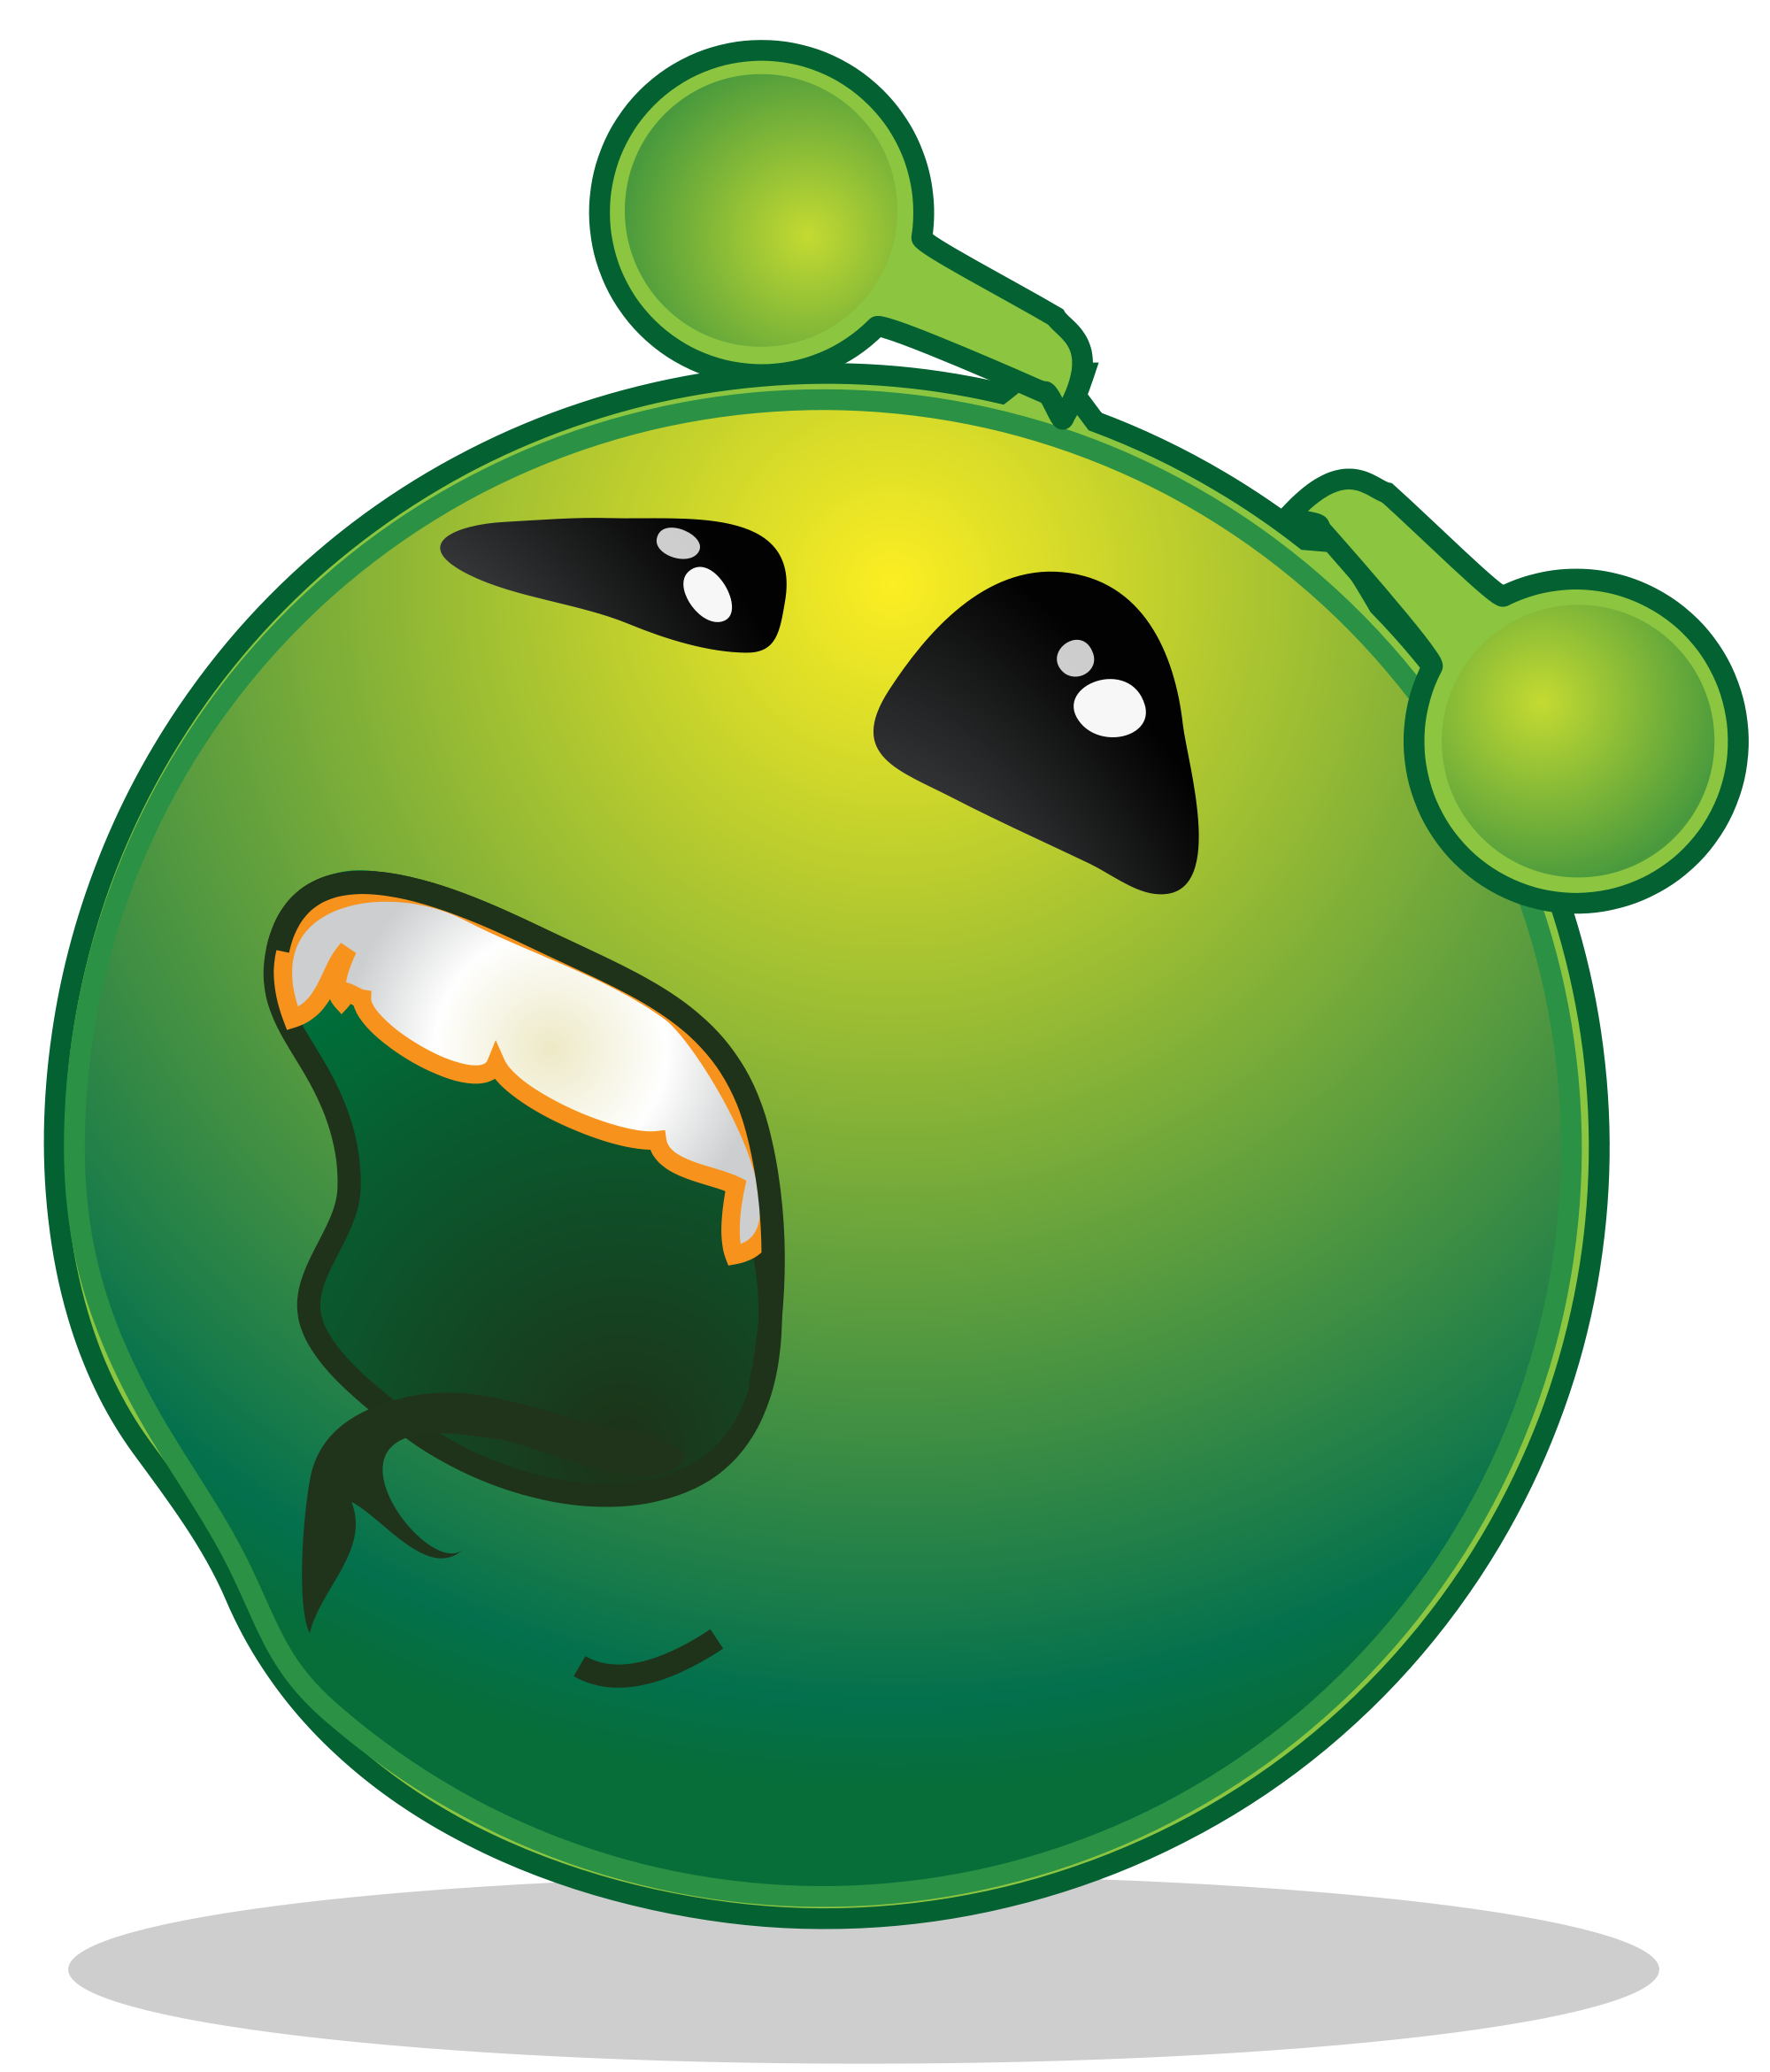 Working clipart bored. File smiley green alien